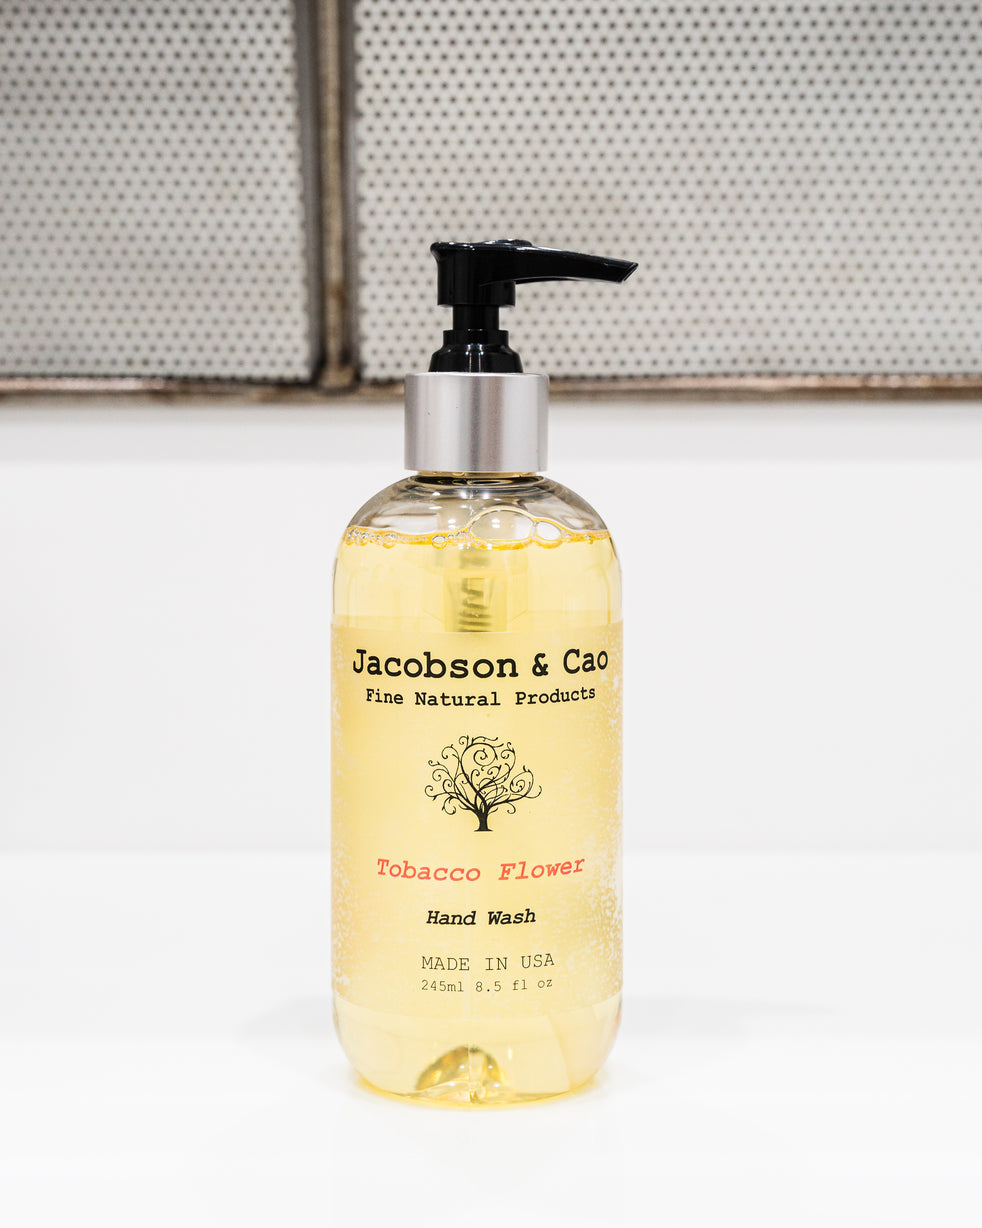 Tobacco Flower Hand Wash